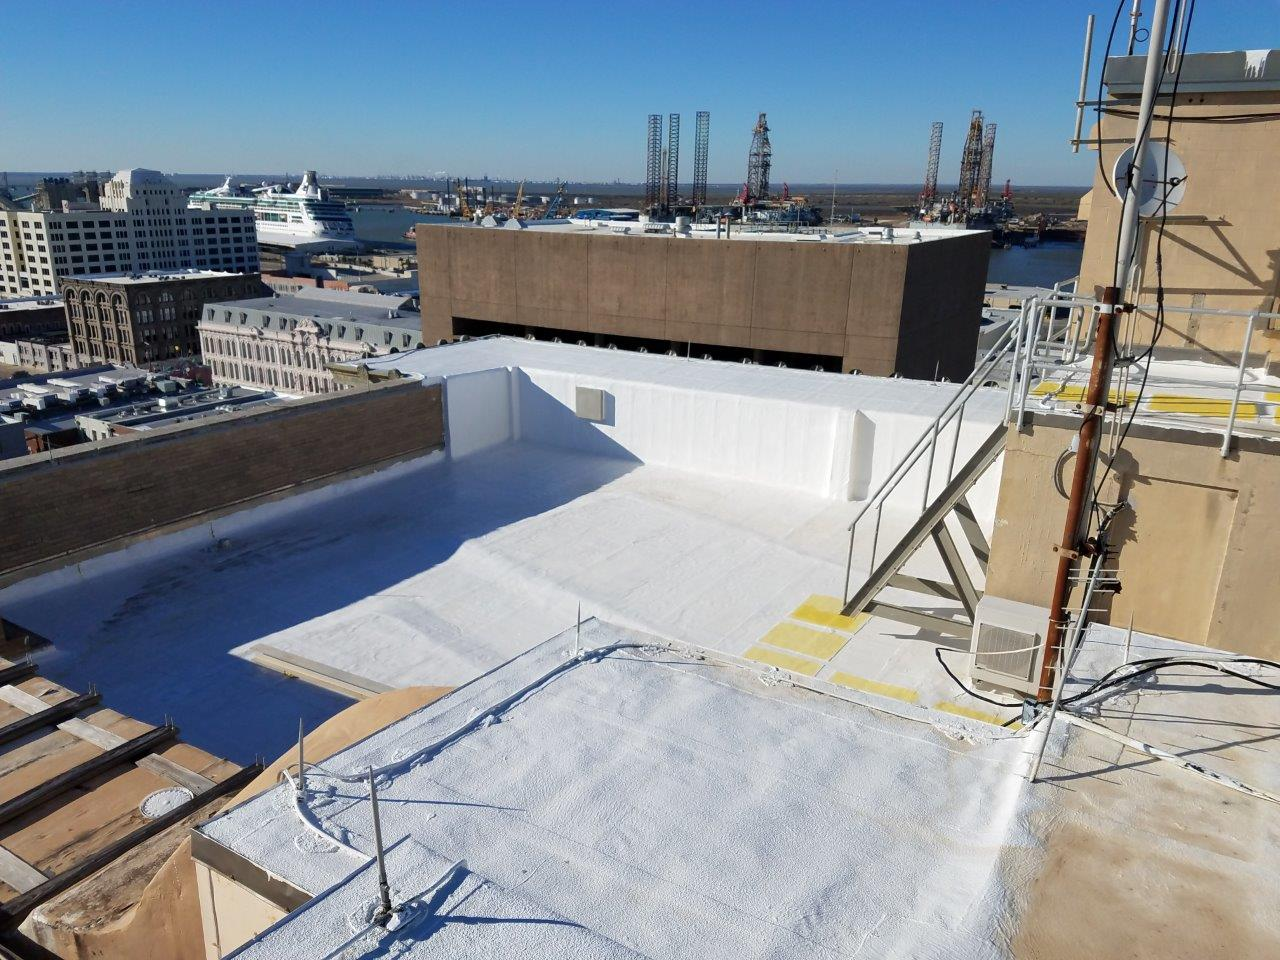 Commercial Flat Roof Replacement & Restoration - Houston, TX